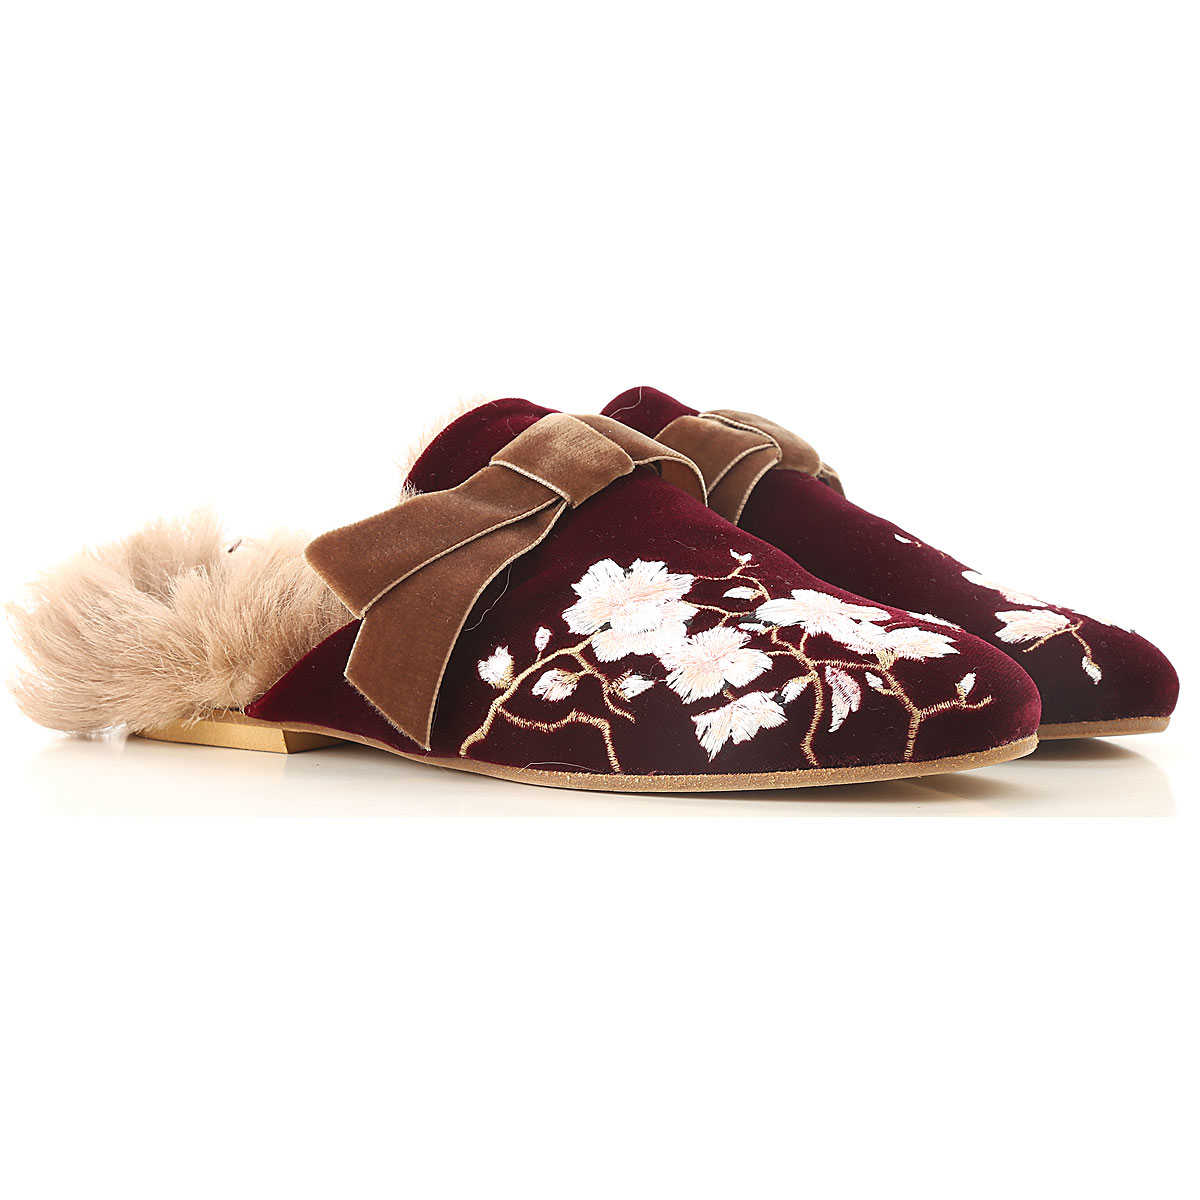 Gia Couture Ballet Flats Ballerina Shoes for Women On Sale